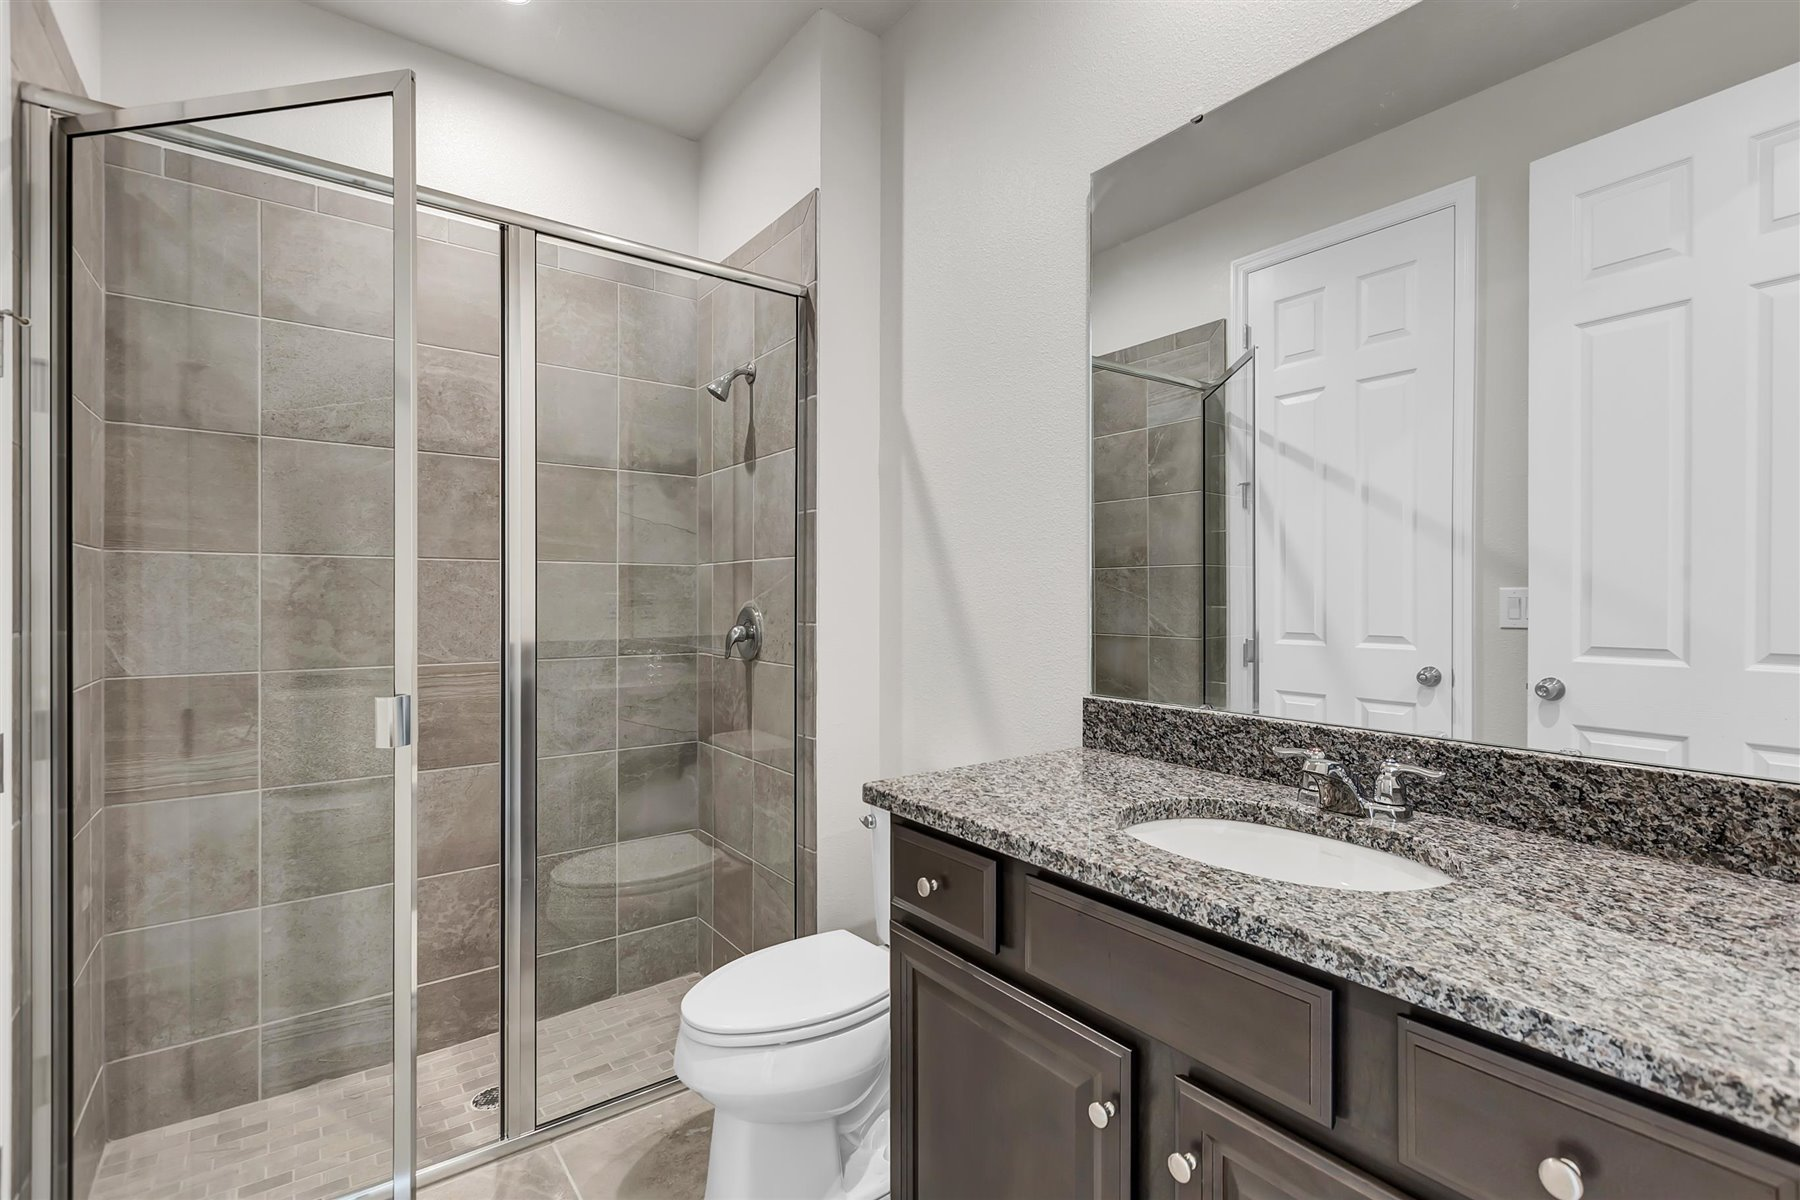 Winthrop Plan Bath at Tapestry in Kissimmee Florida by Mattamy Homes